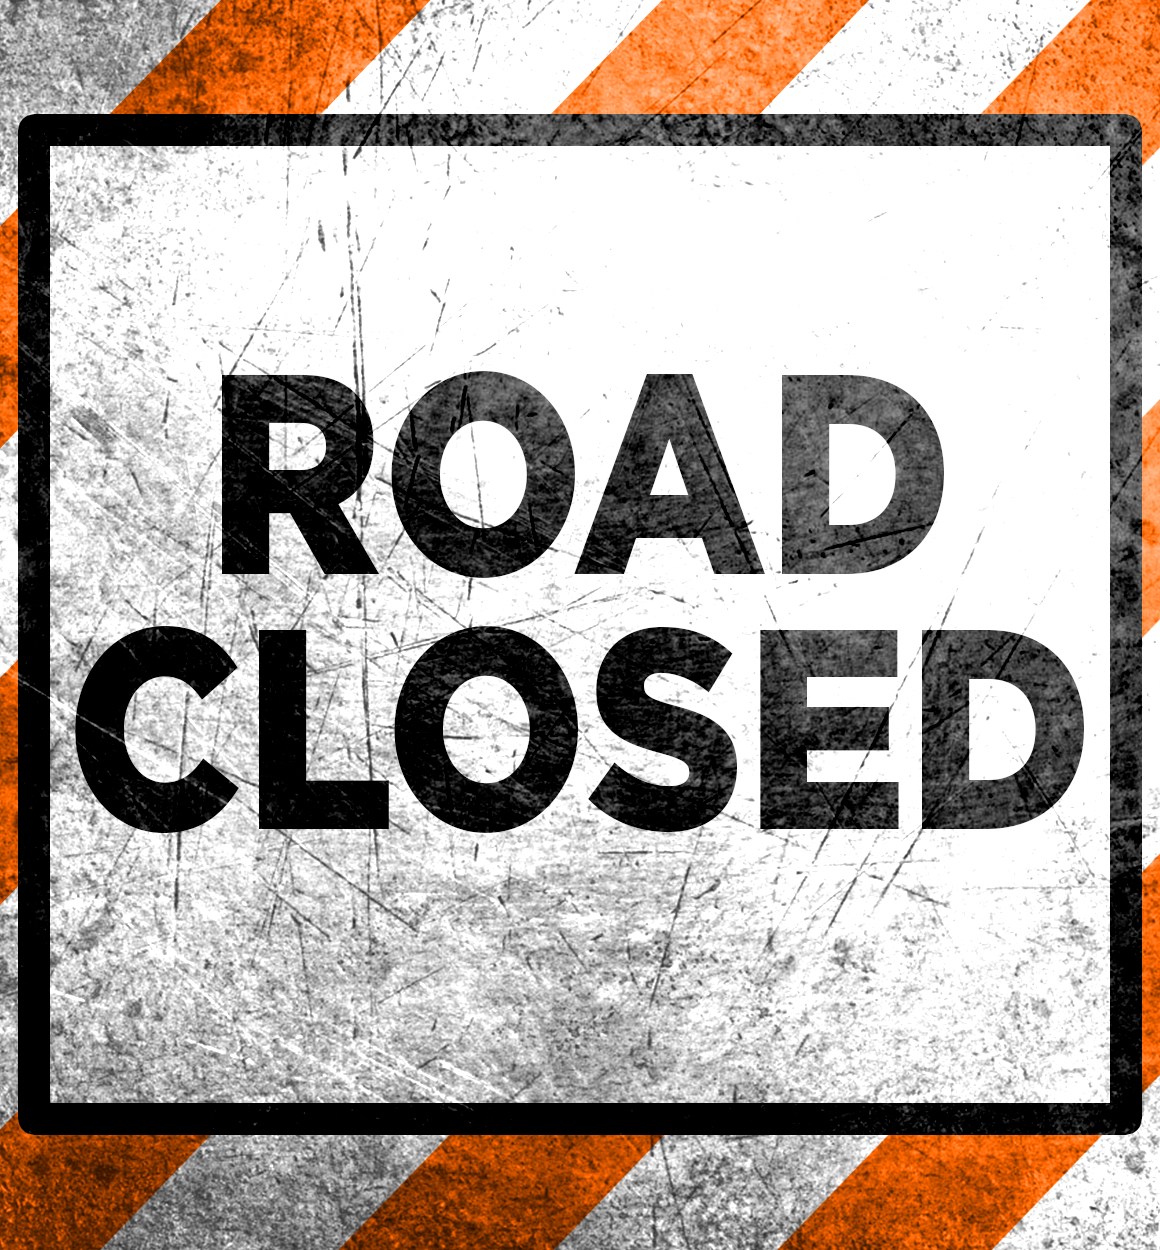 Motorists will find street closures and detours this Saturday to make way for an athletic event running through Roanoke downtown.